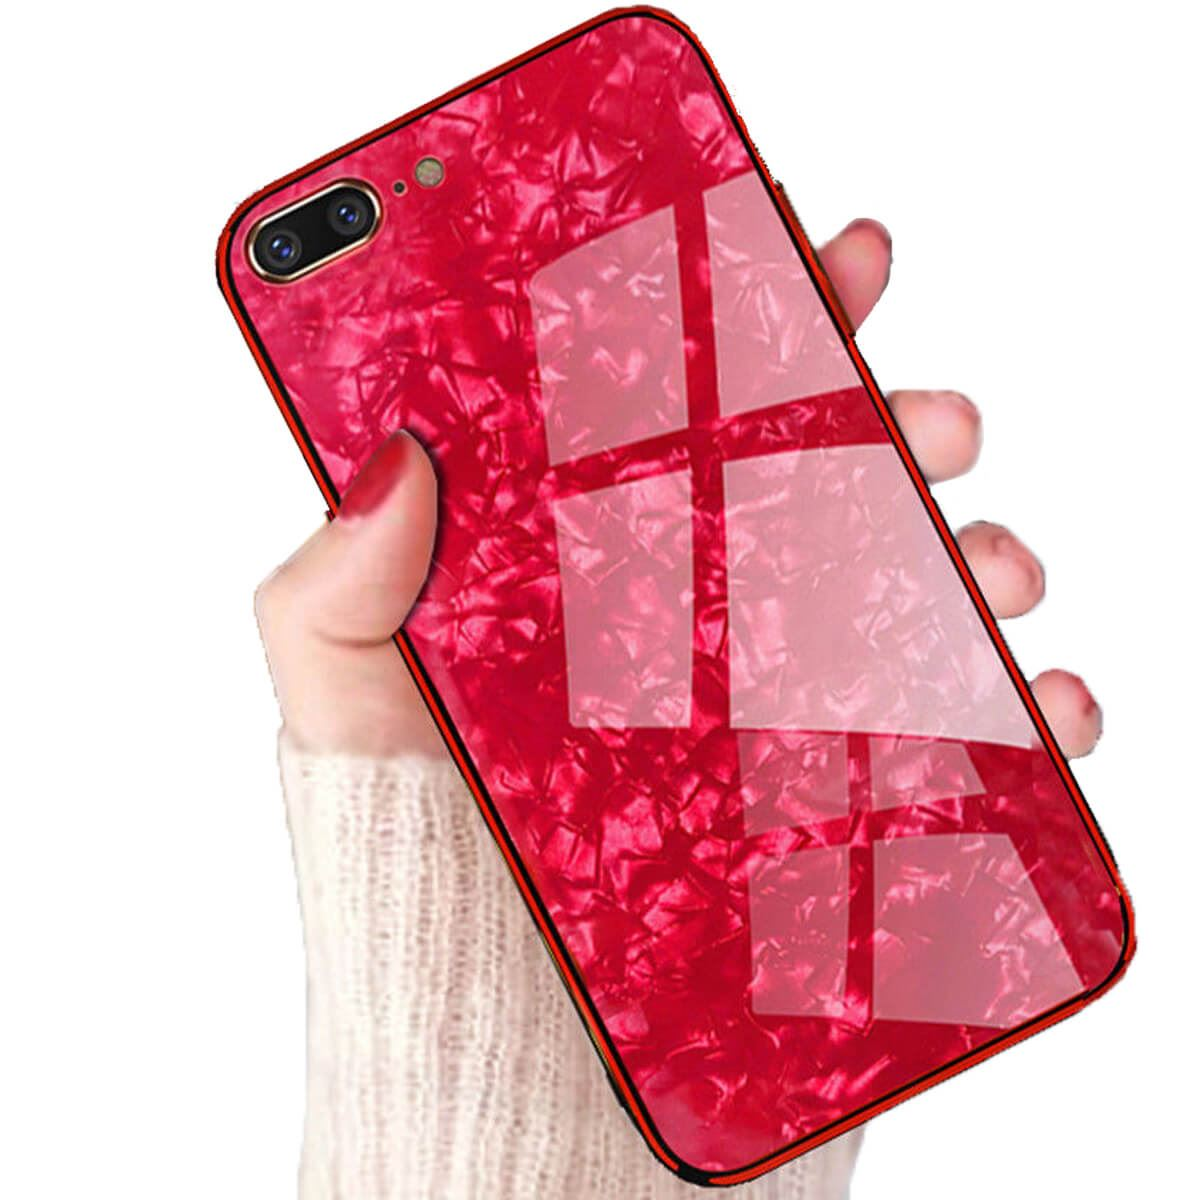 Marble-Tempered-Glass-Case-For-Apple-iPhone-X-XS-XR-Max-10-8-7-6s-6-Luxury-Cover thumbnail 24